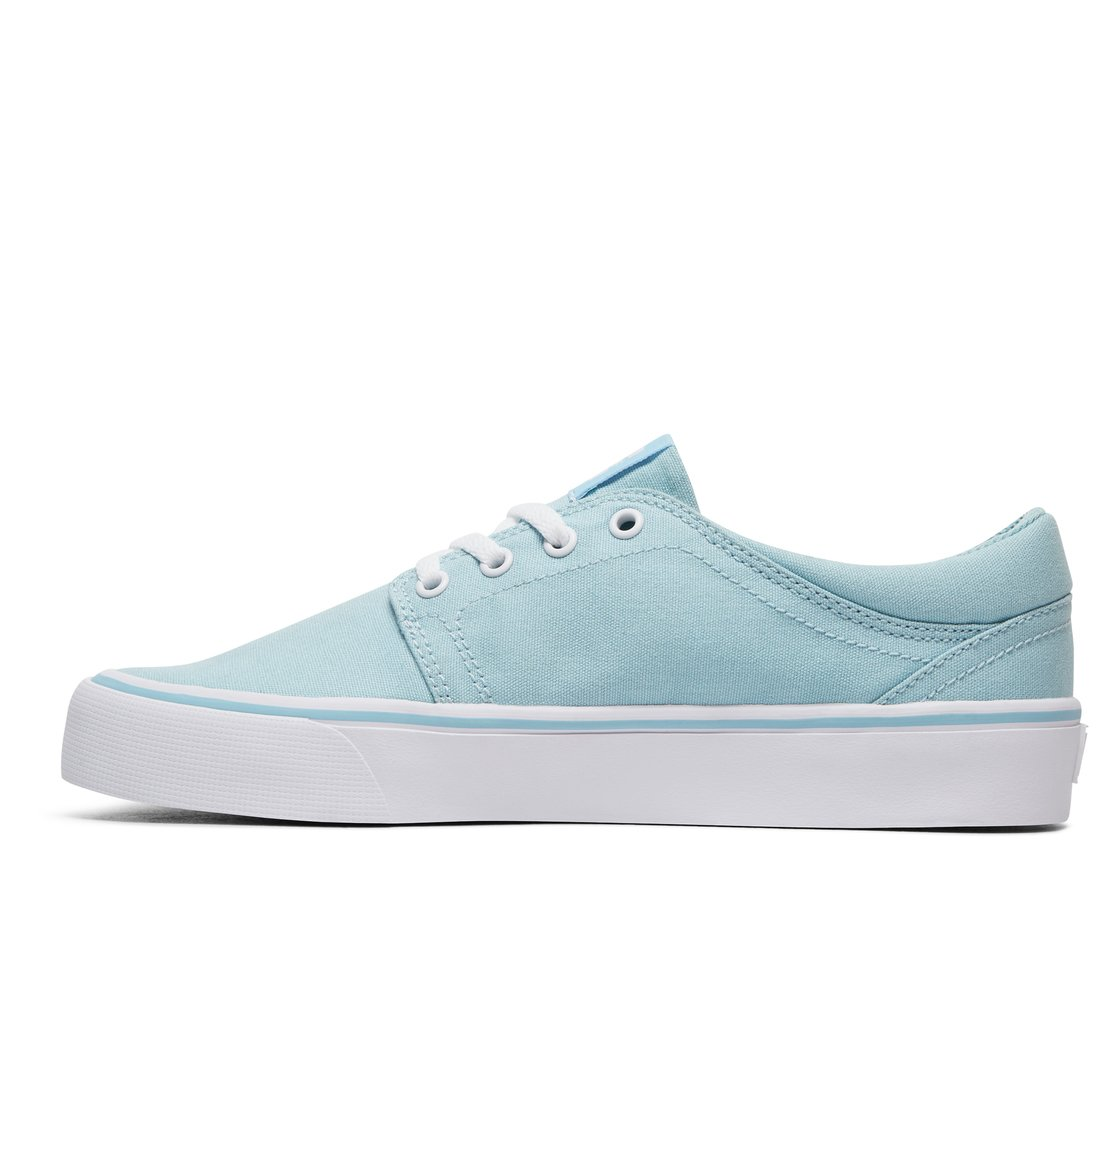 DC Shoes Schuhe »Trase TX«, blau, Light blue